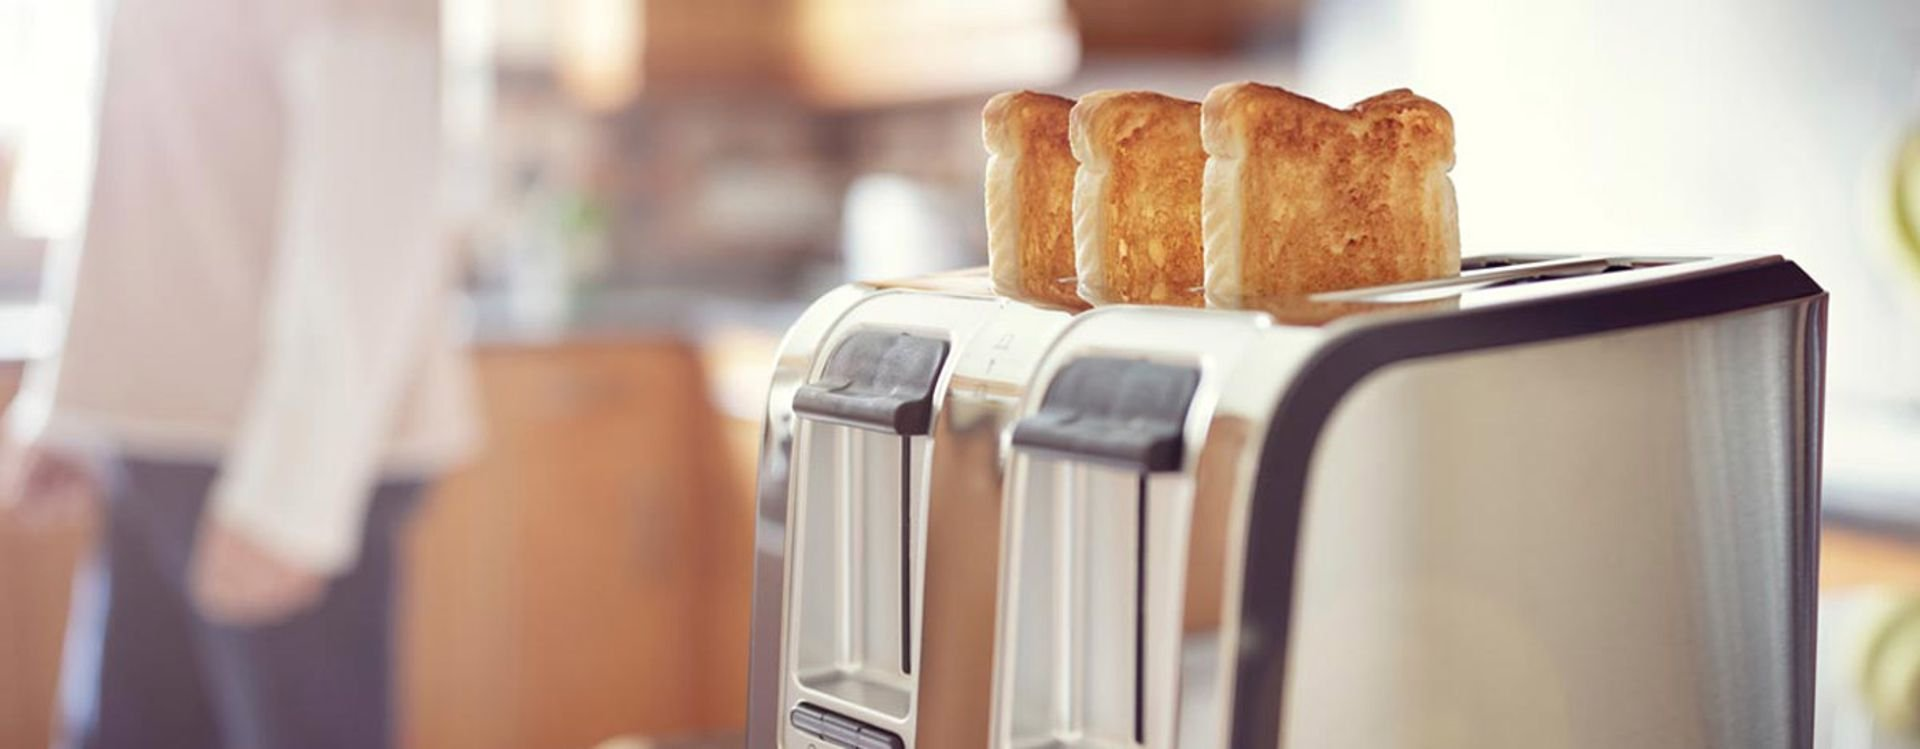 It is difficult to heat toast without a toaster.